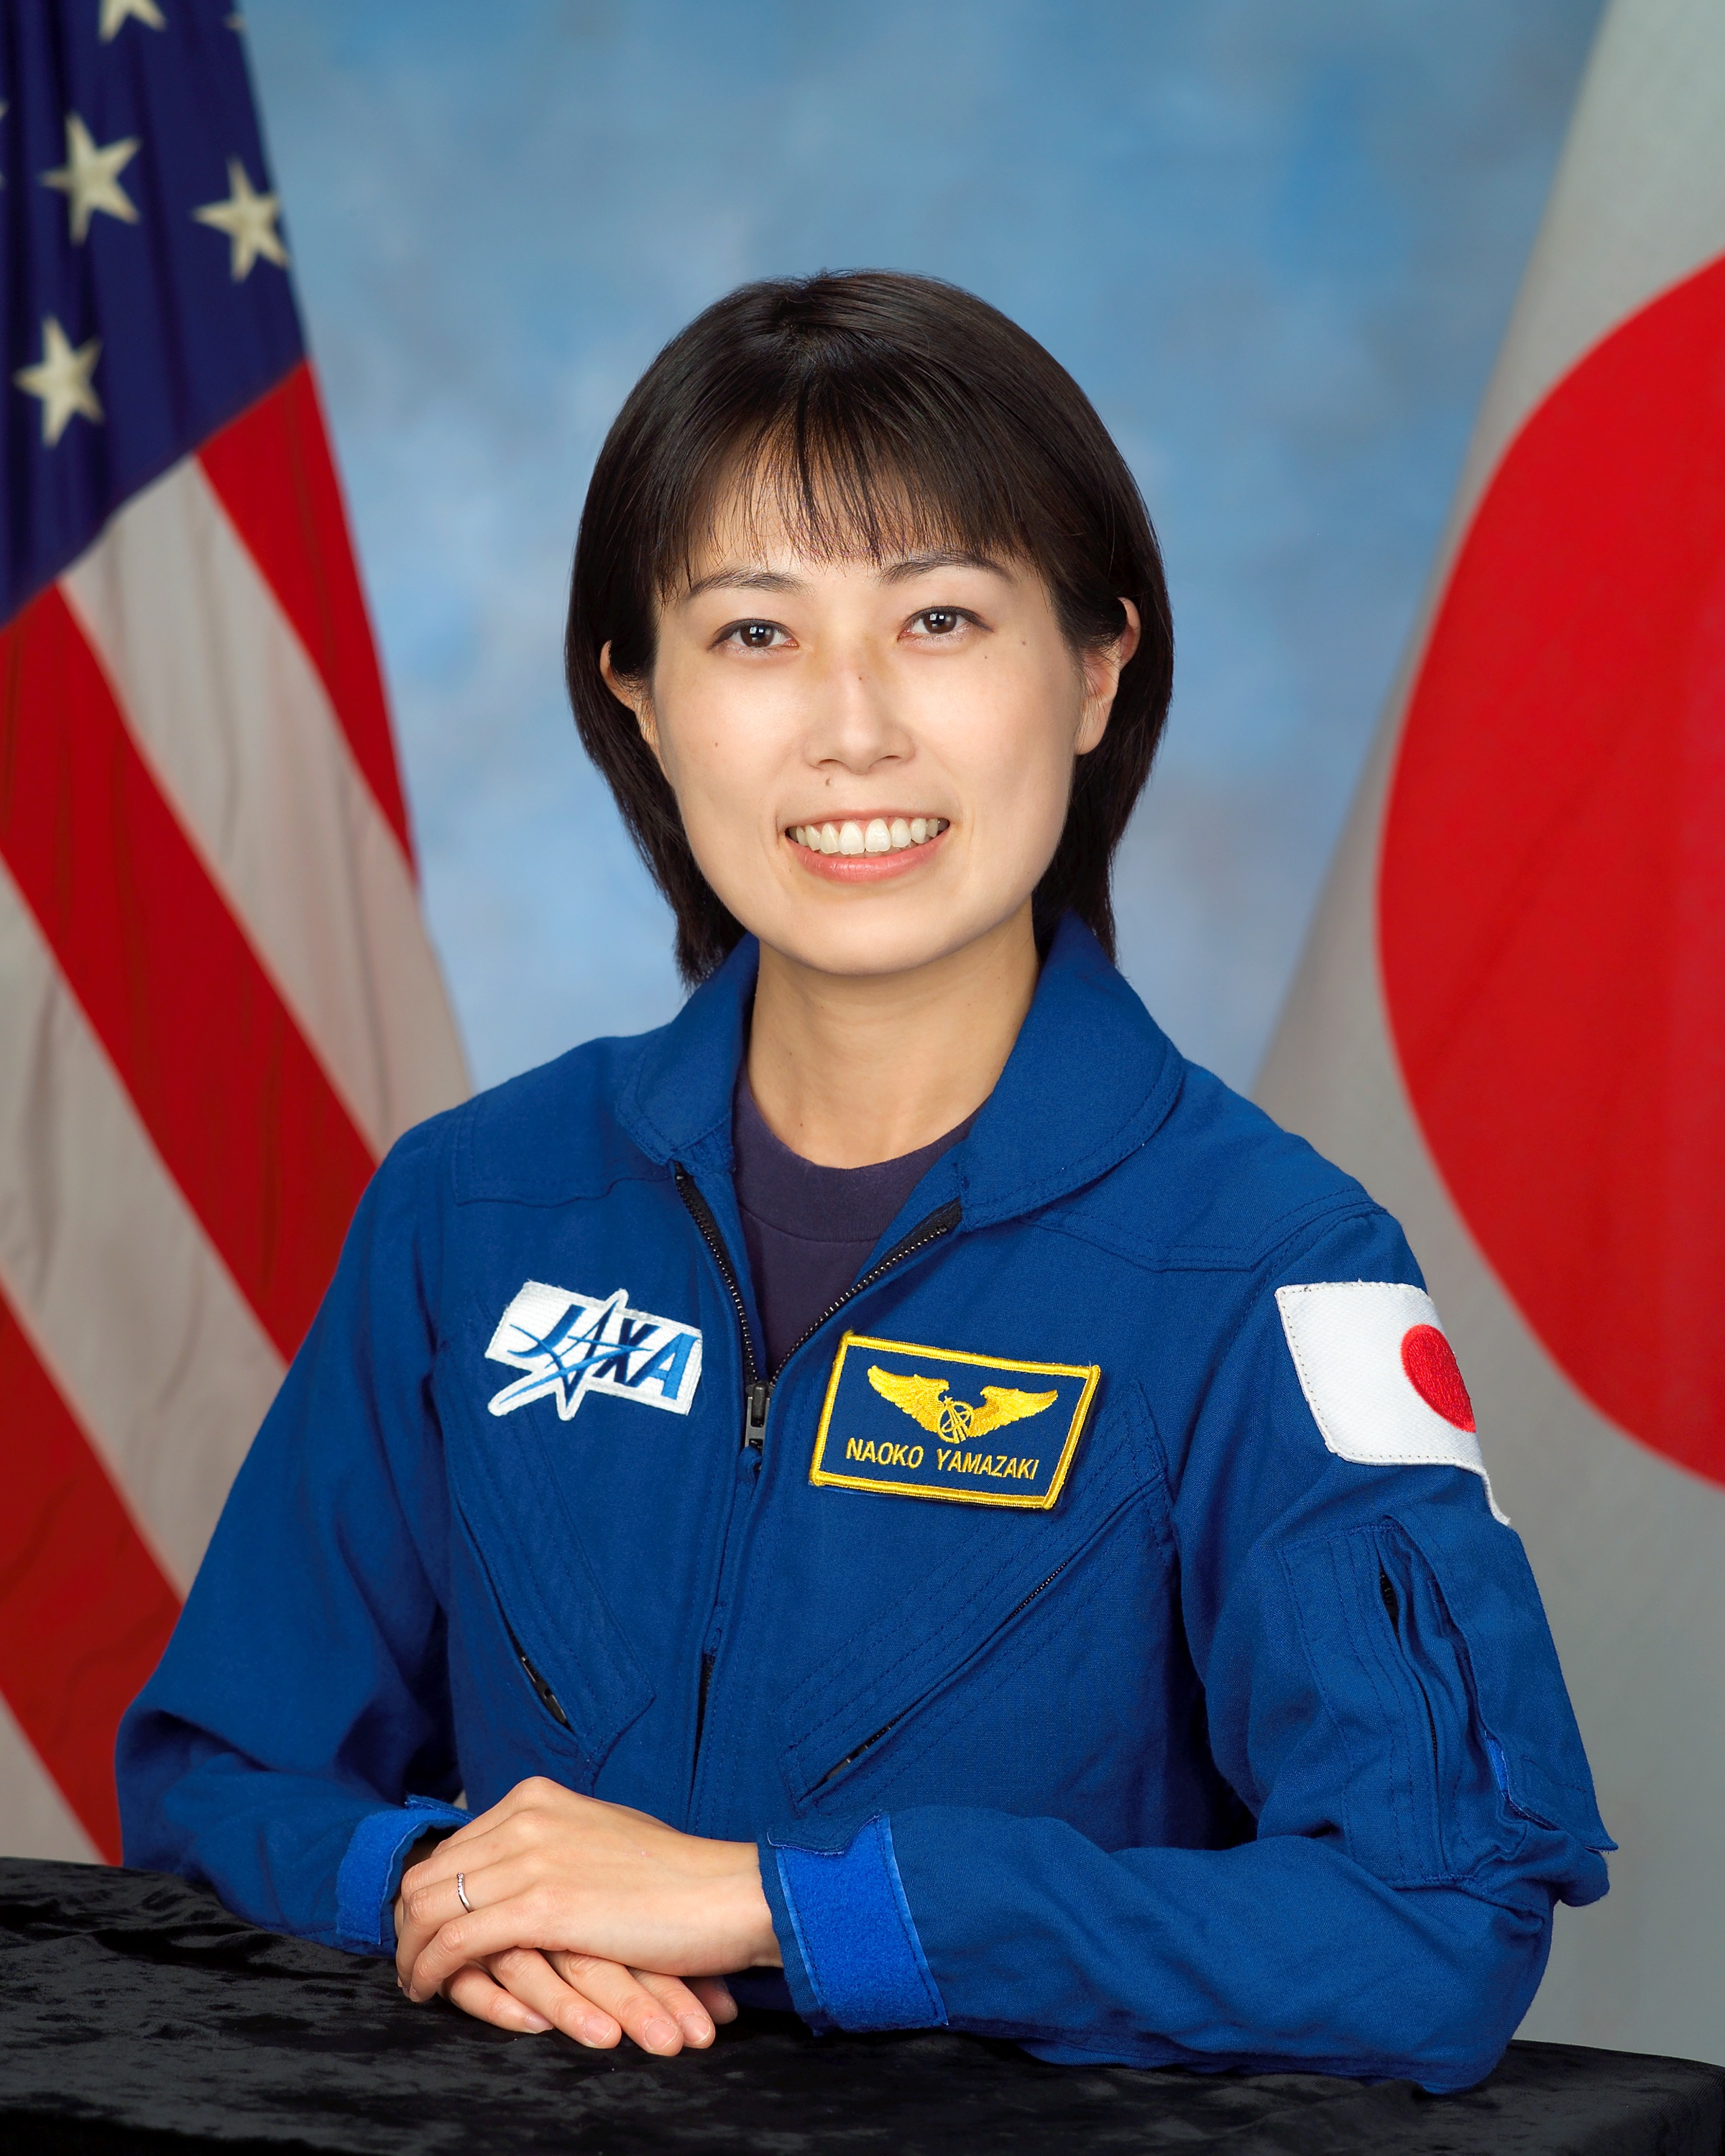 Japanese Woman Blasts Into Space with Style picture